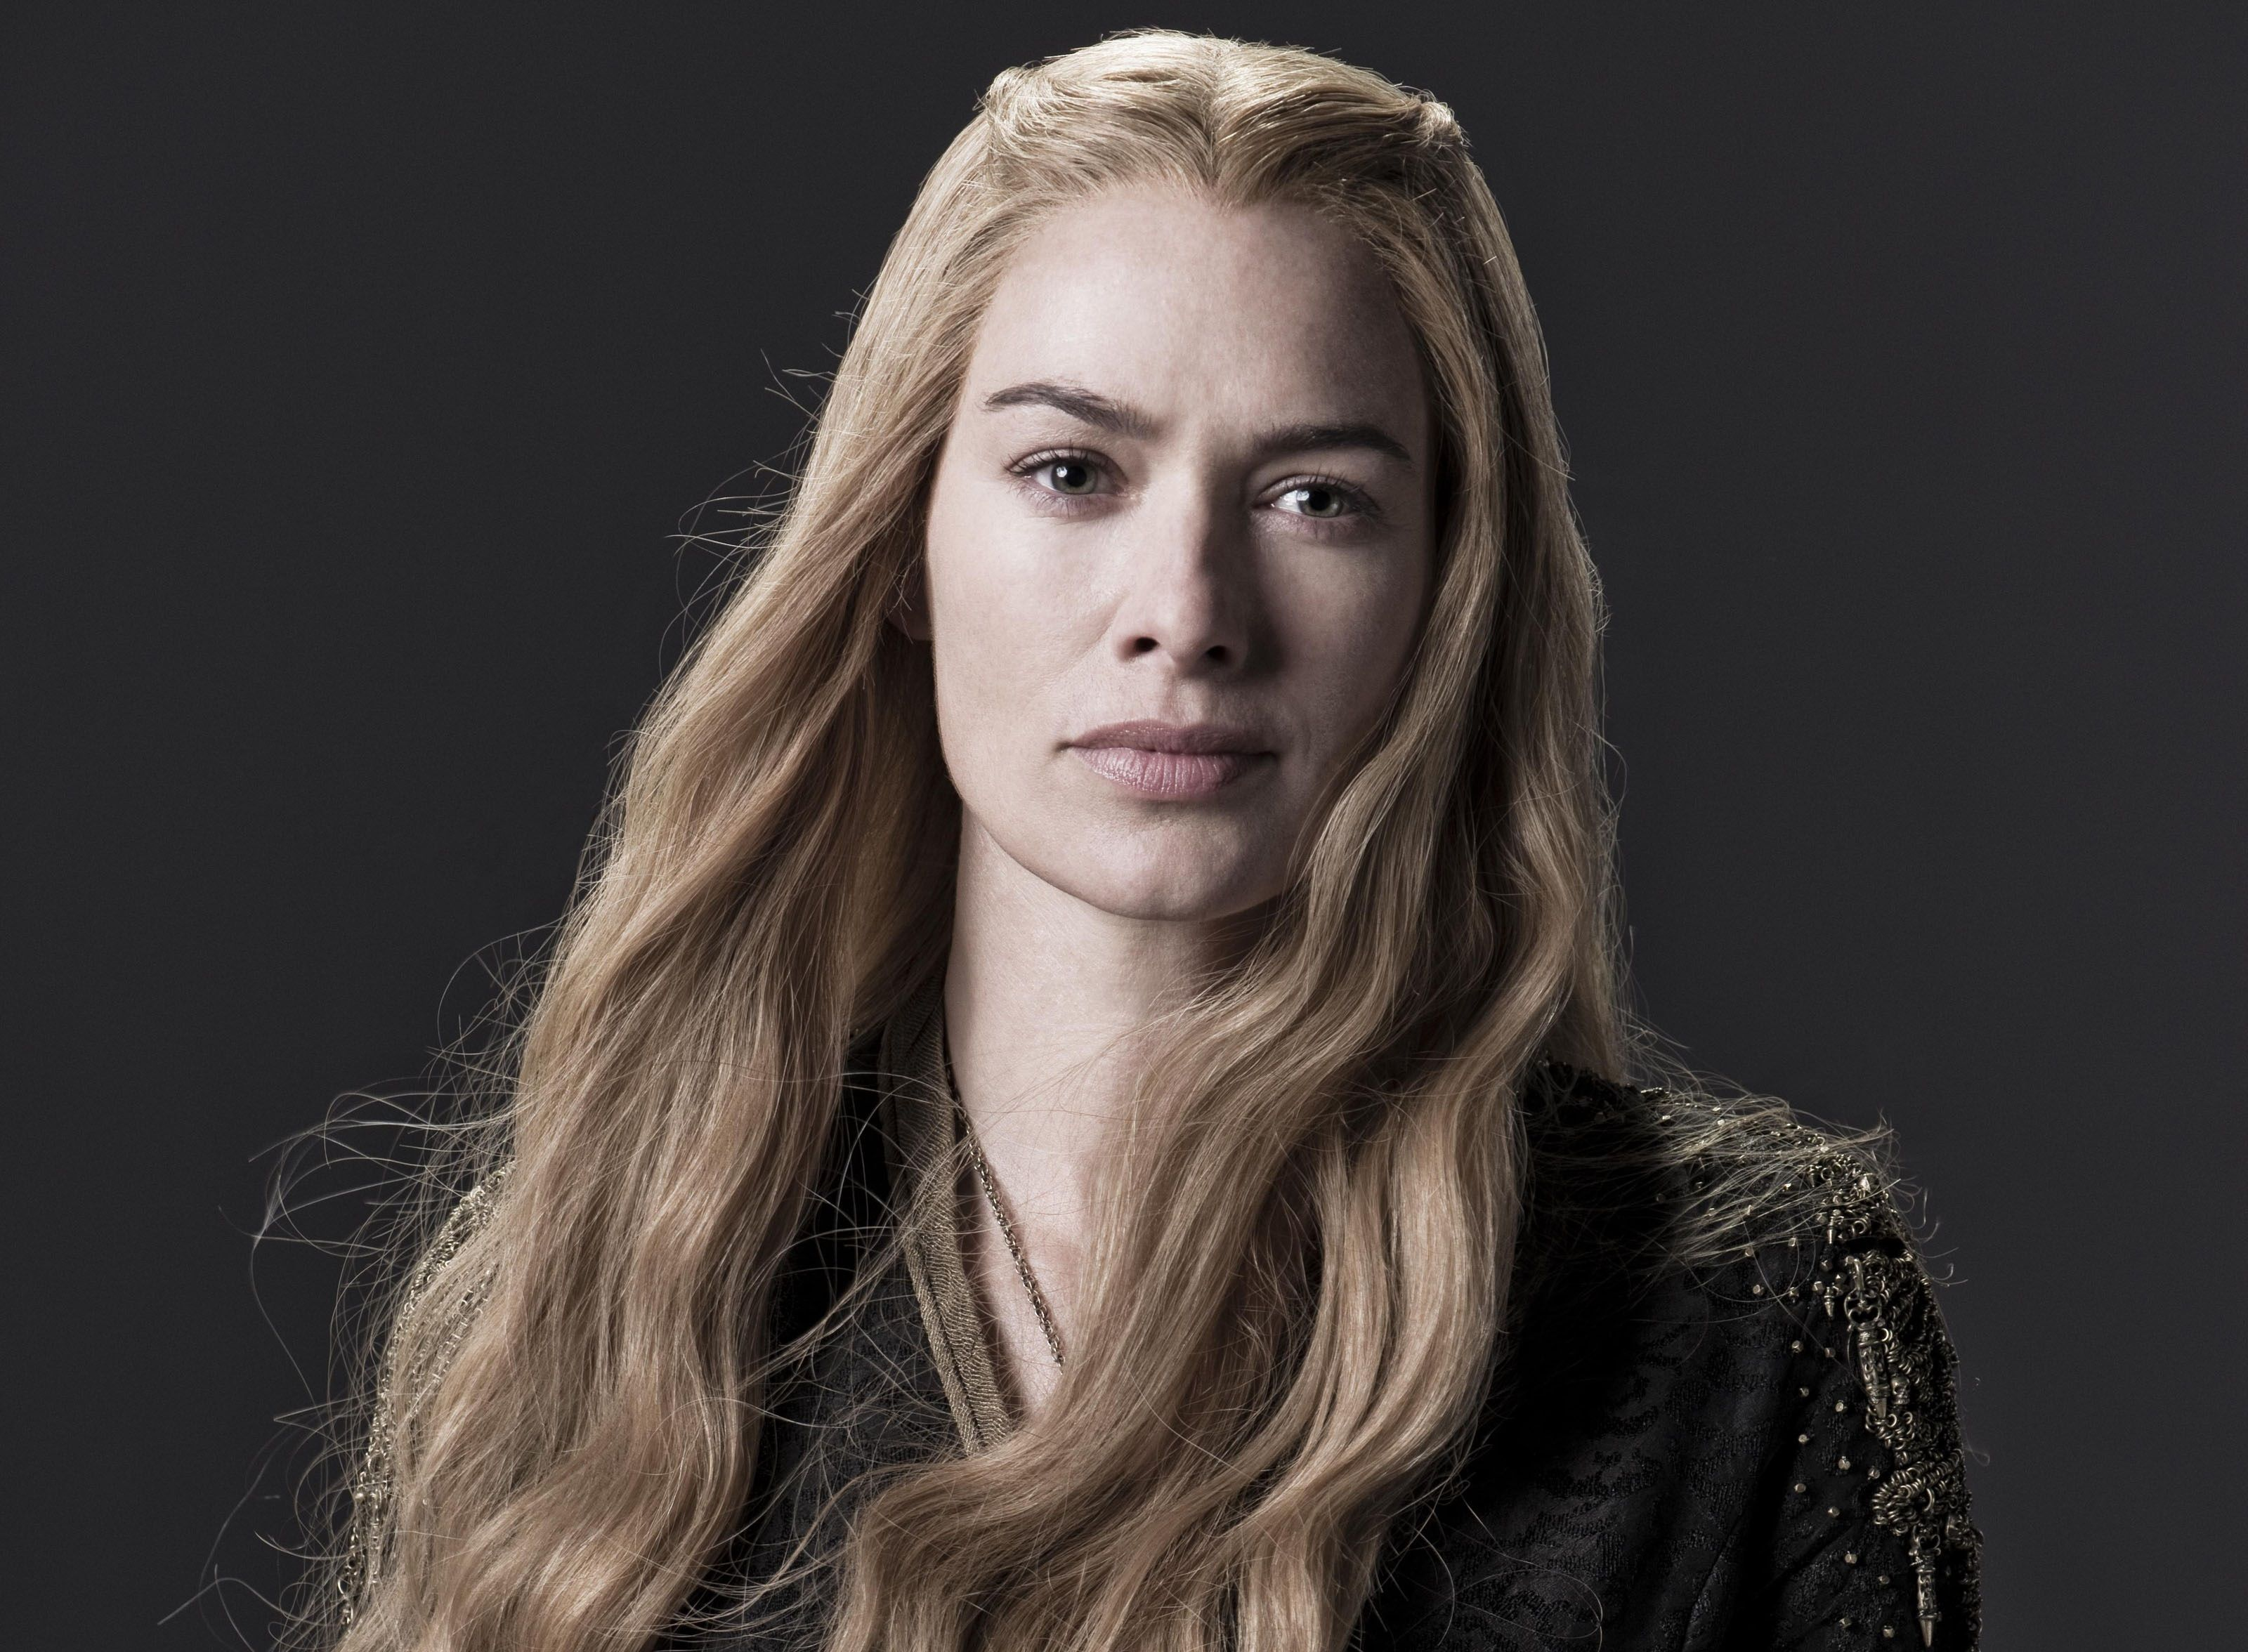 50 Cersei Lannister Hd Wallpapers Backgrounds Wallpaper